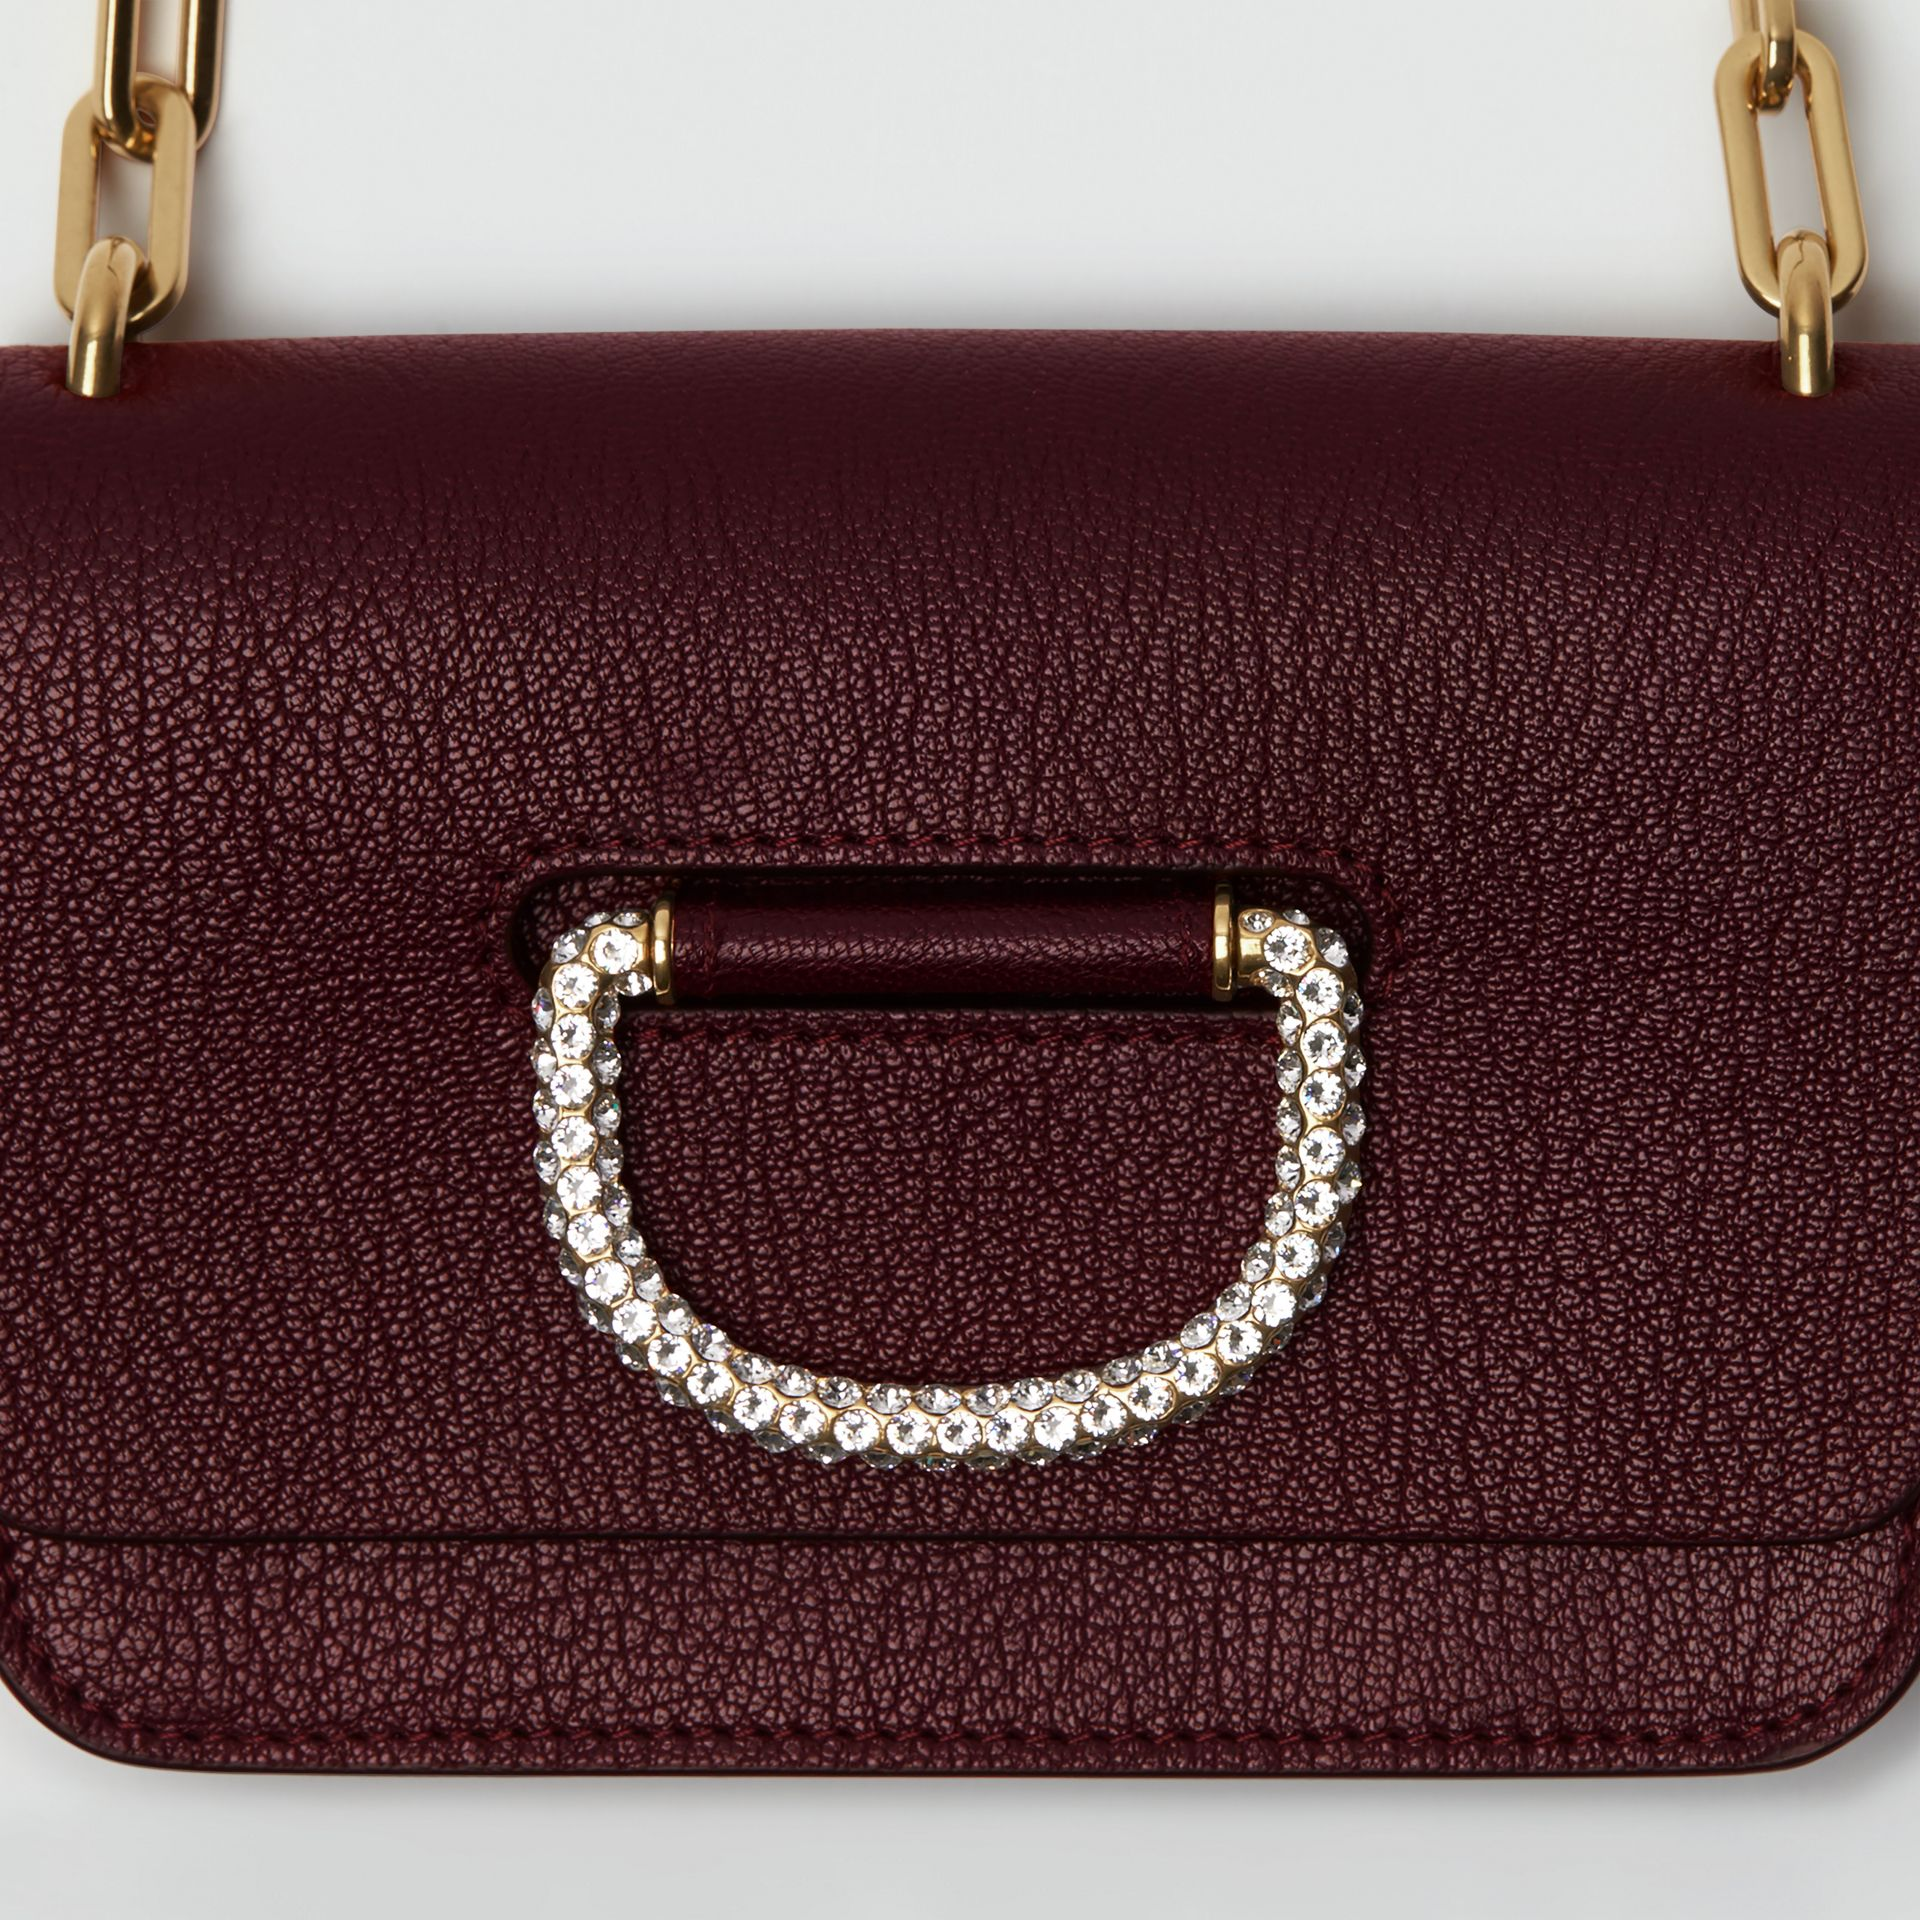 The Mini Leather Crystal D-ring Bag in Deep Claret - Women | Burberry Hong Kong - gallery image 1